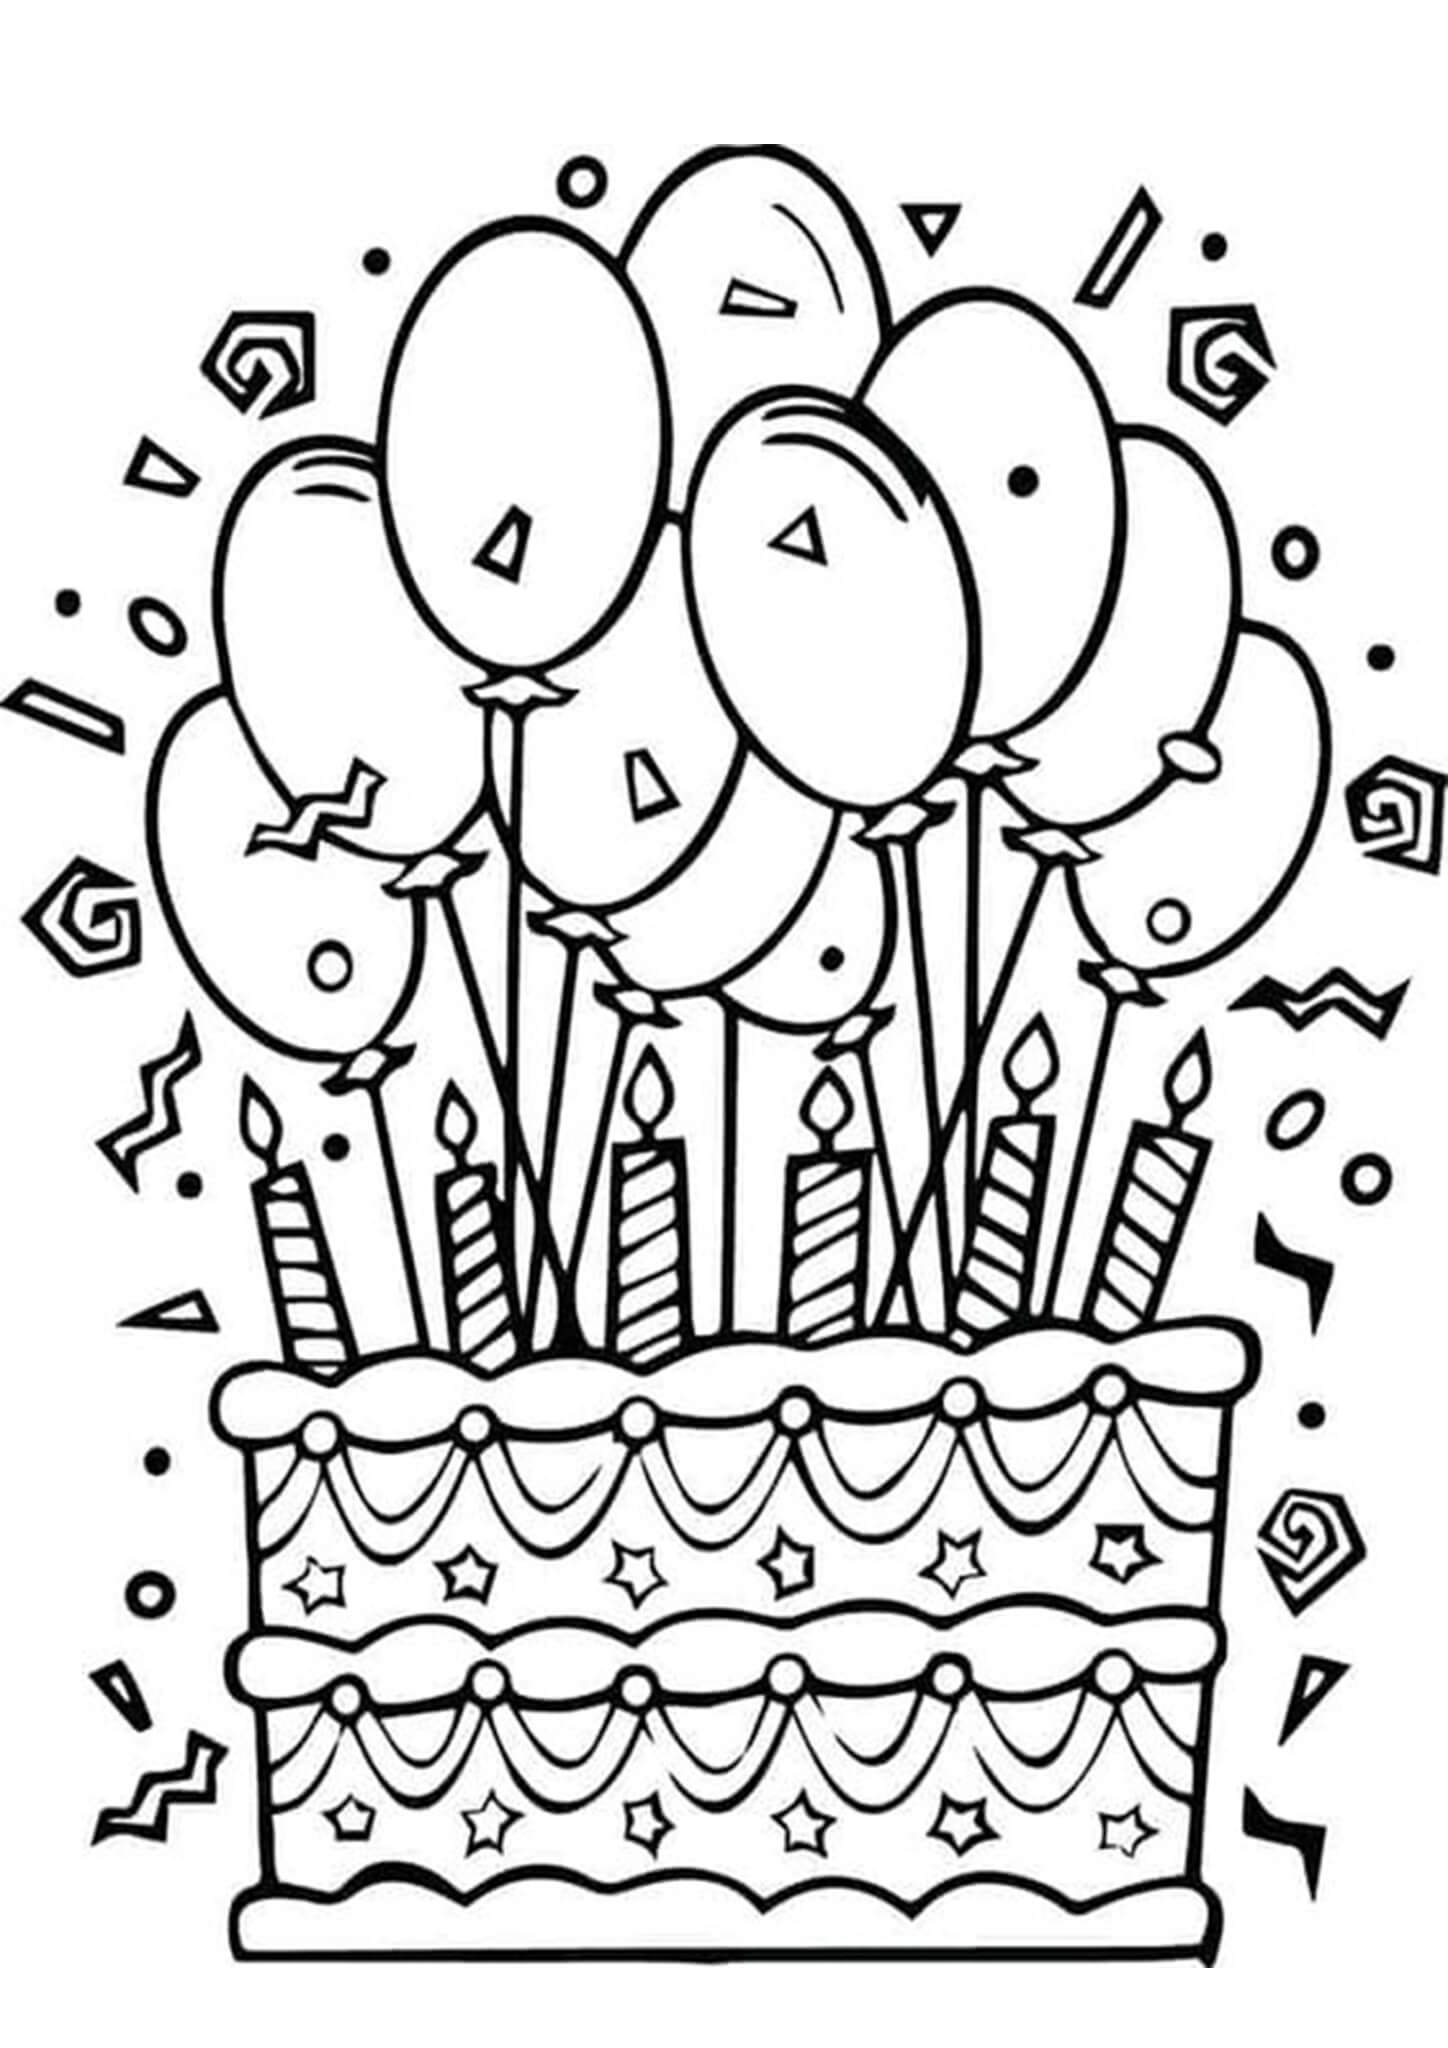 Balloons Birthday Cake Coloring Page Free Printable Coloring Pages For Kids